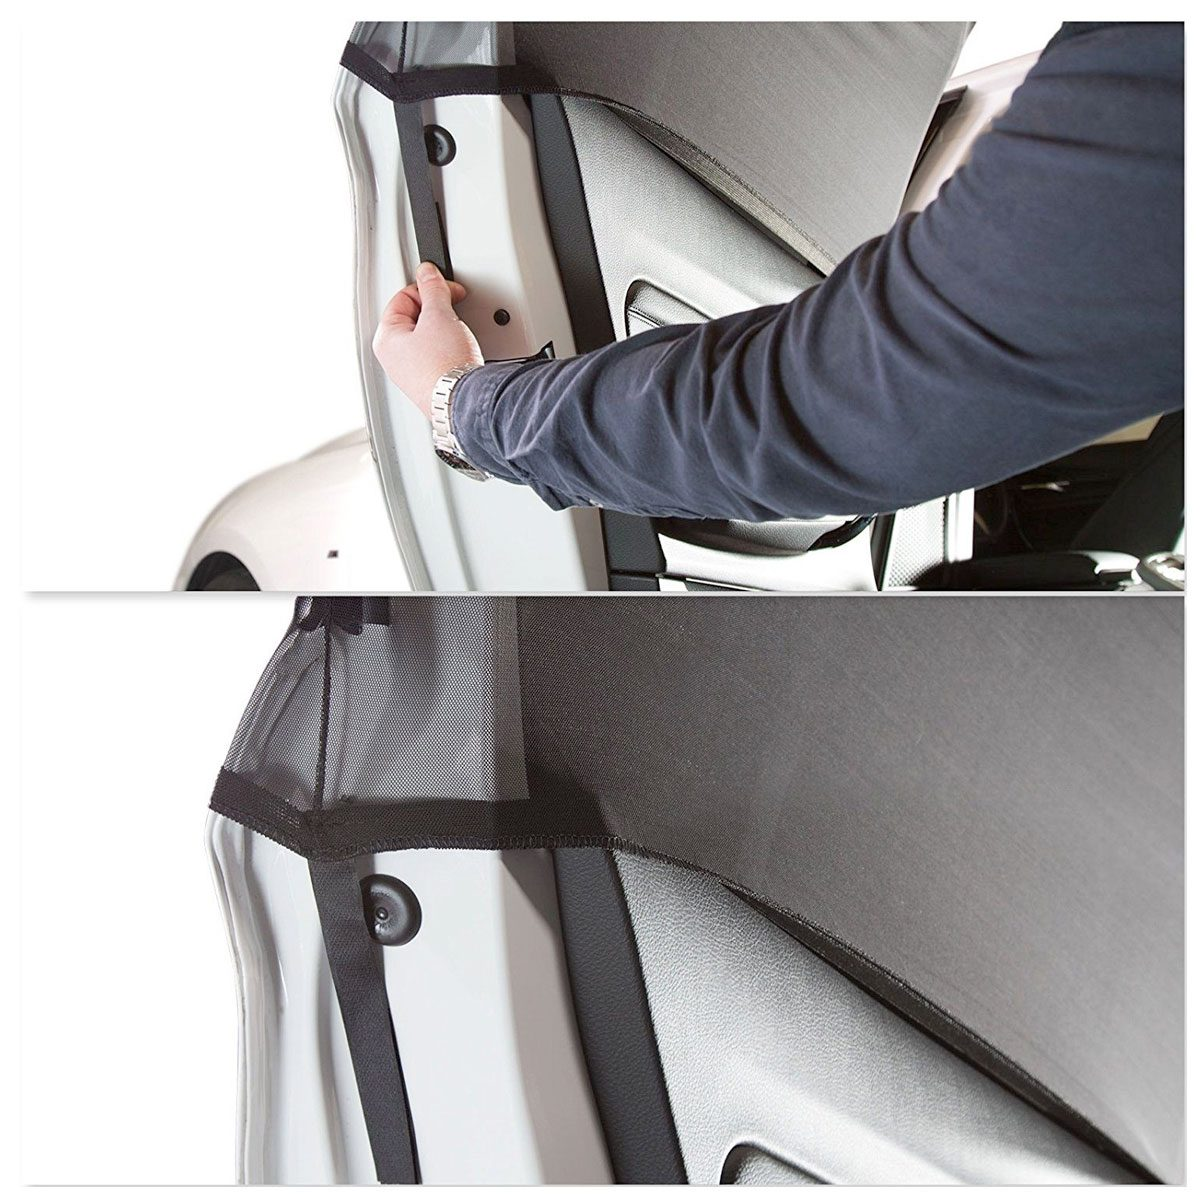 Easily installed onto the cars door frame